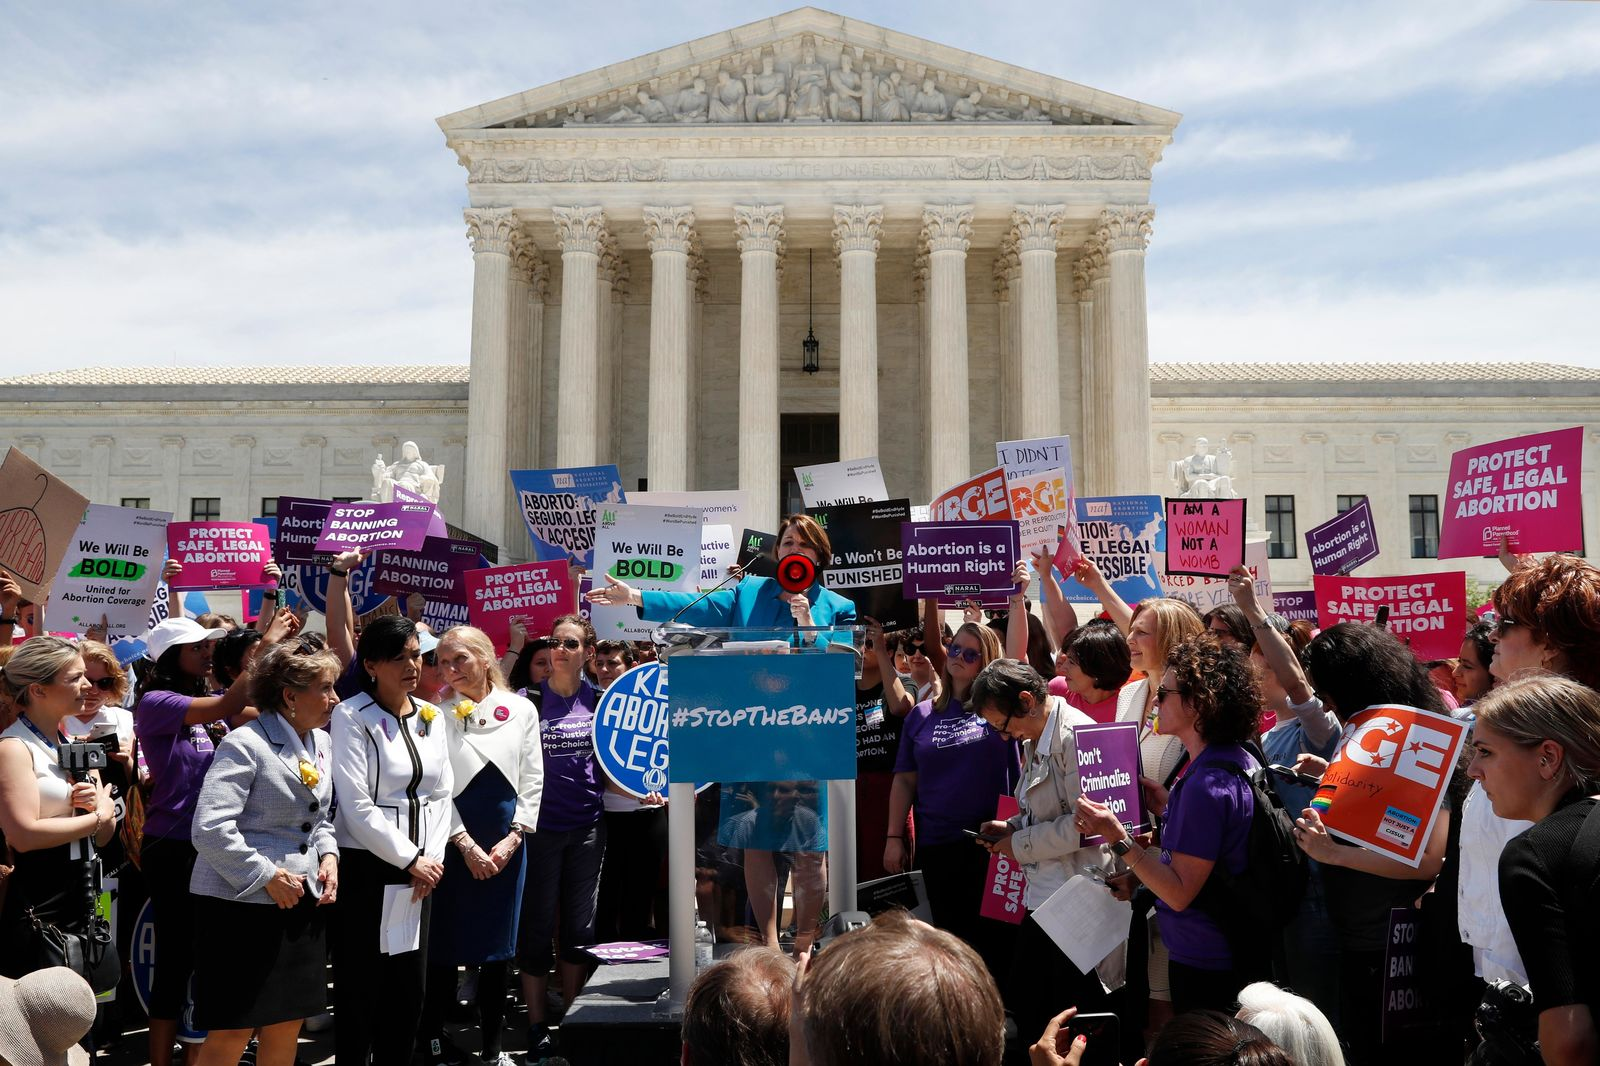 Democratic presidential candidate Sen. Amy Klobuchar, D-Minn., speaks during a protest against abortion bans, Tuesday, May 21, 2019, outside the Supreme Court in Washington. A coalition of dozens of groups held a National Day of Action to Stop the Bans, with other events planned throughout the week. (AP Photo/Jacquelyn Martin)